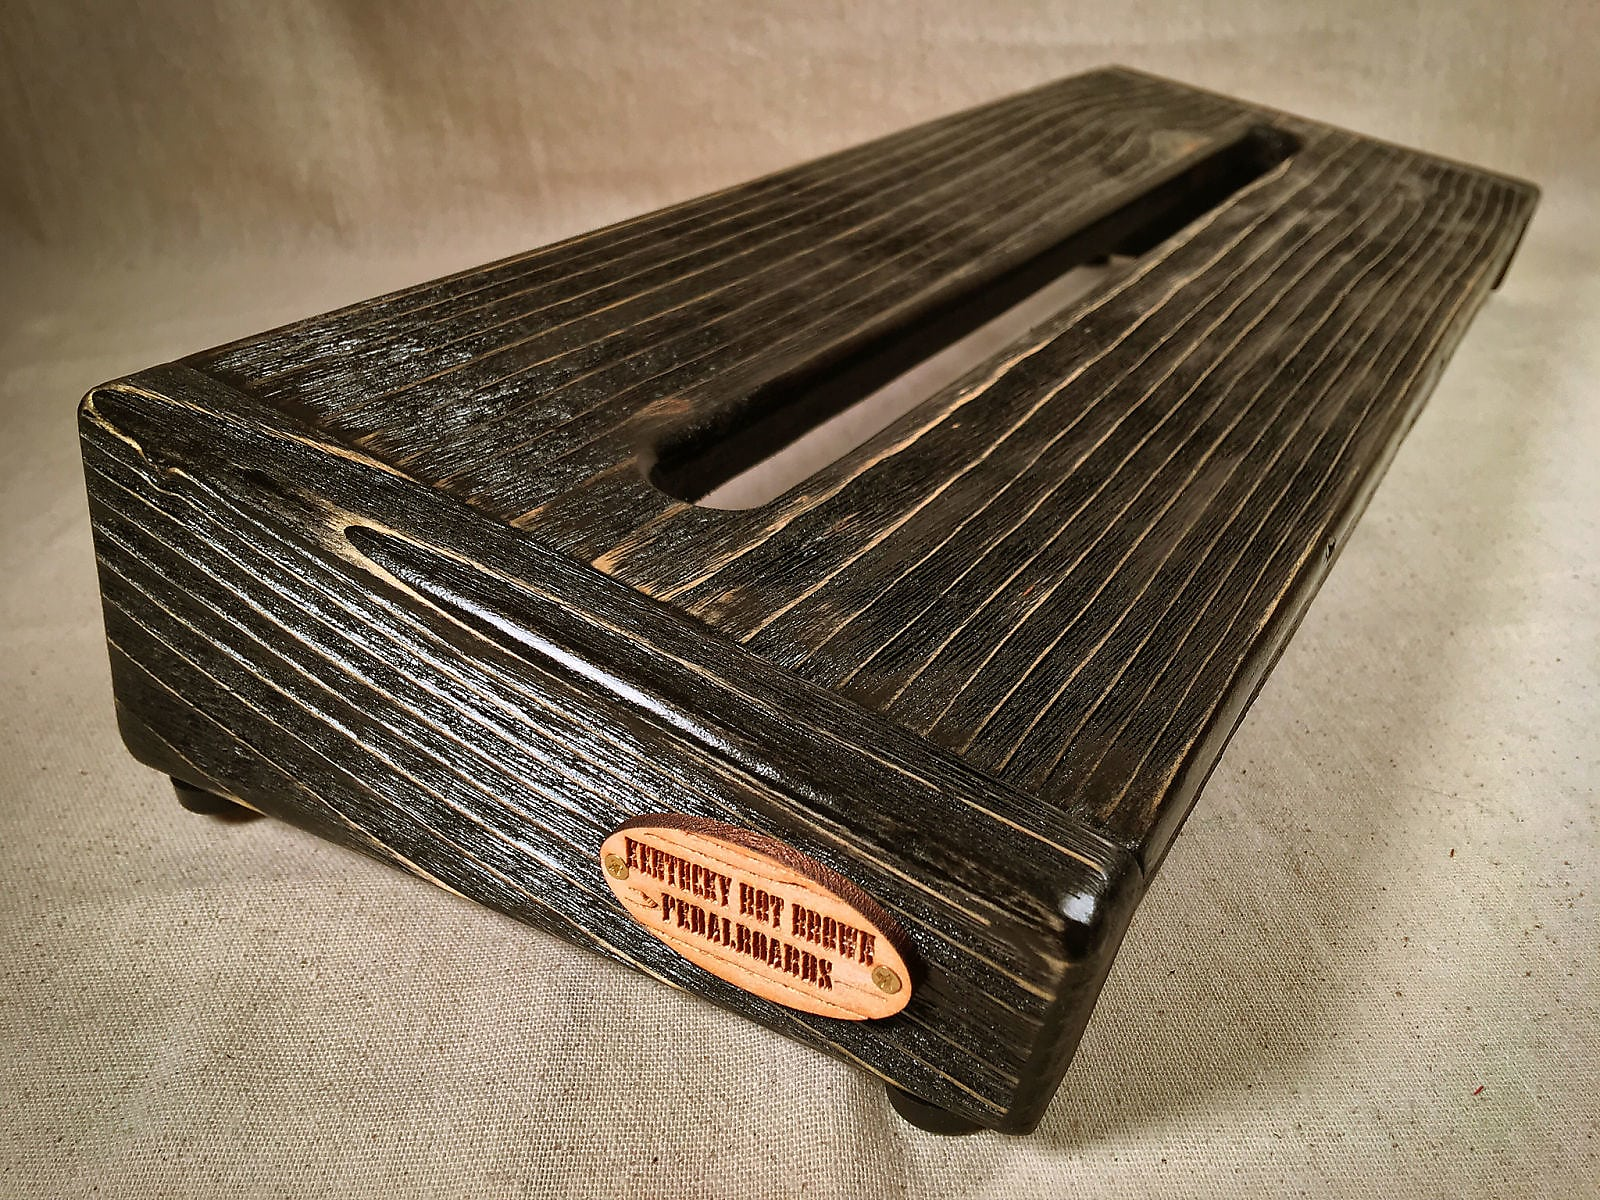 Rough Rider Large Textured - Ebony Stain Pedalboard by KYHBPB - P.O.